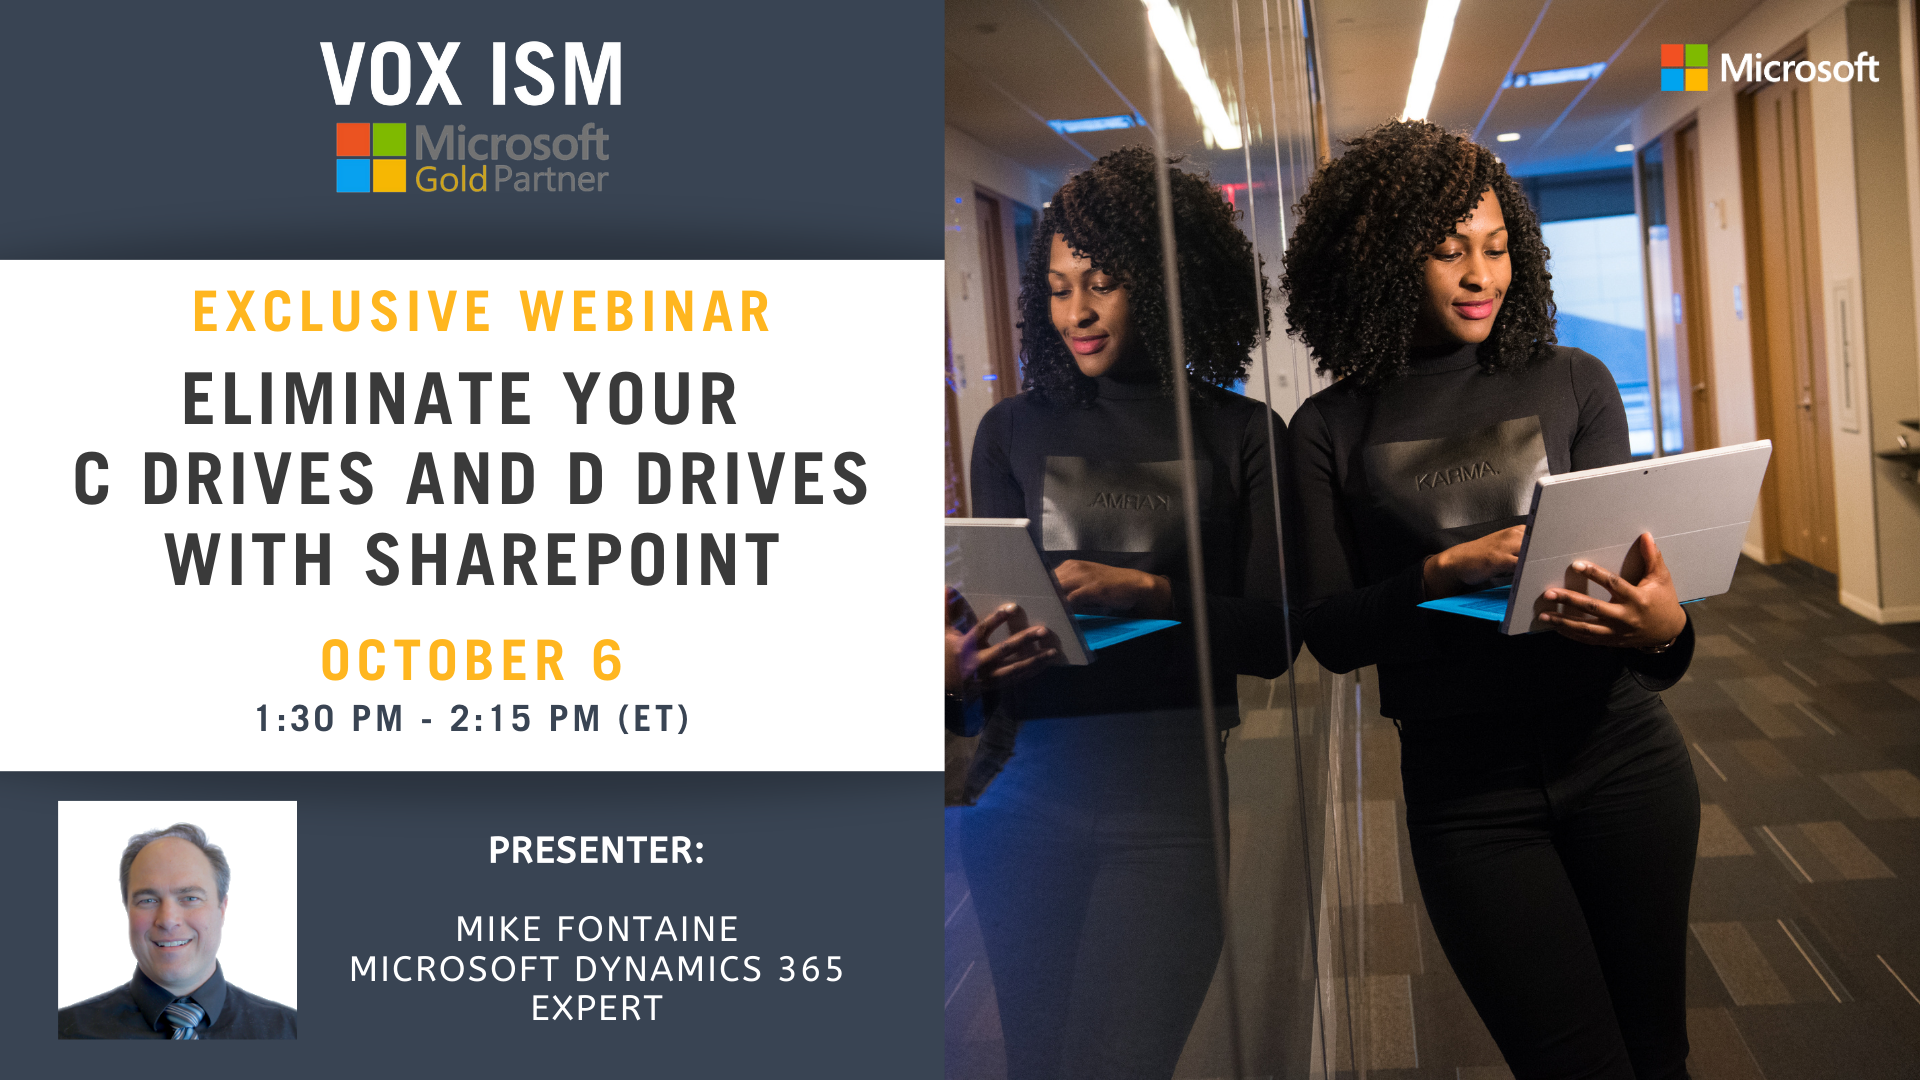 Eliminate your C drives and D drives with SharePoint - October 6